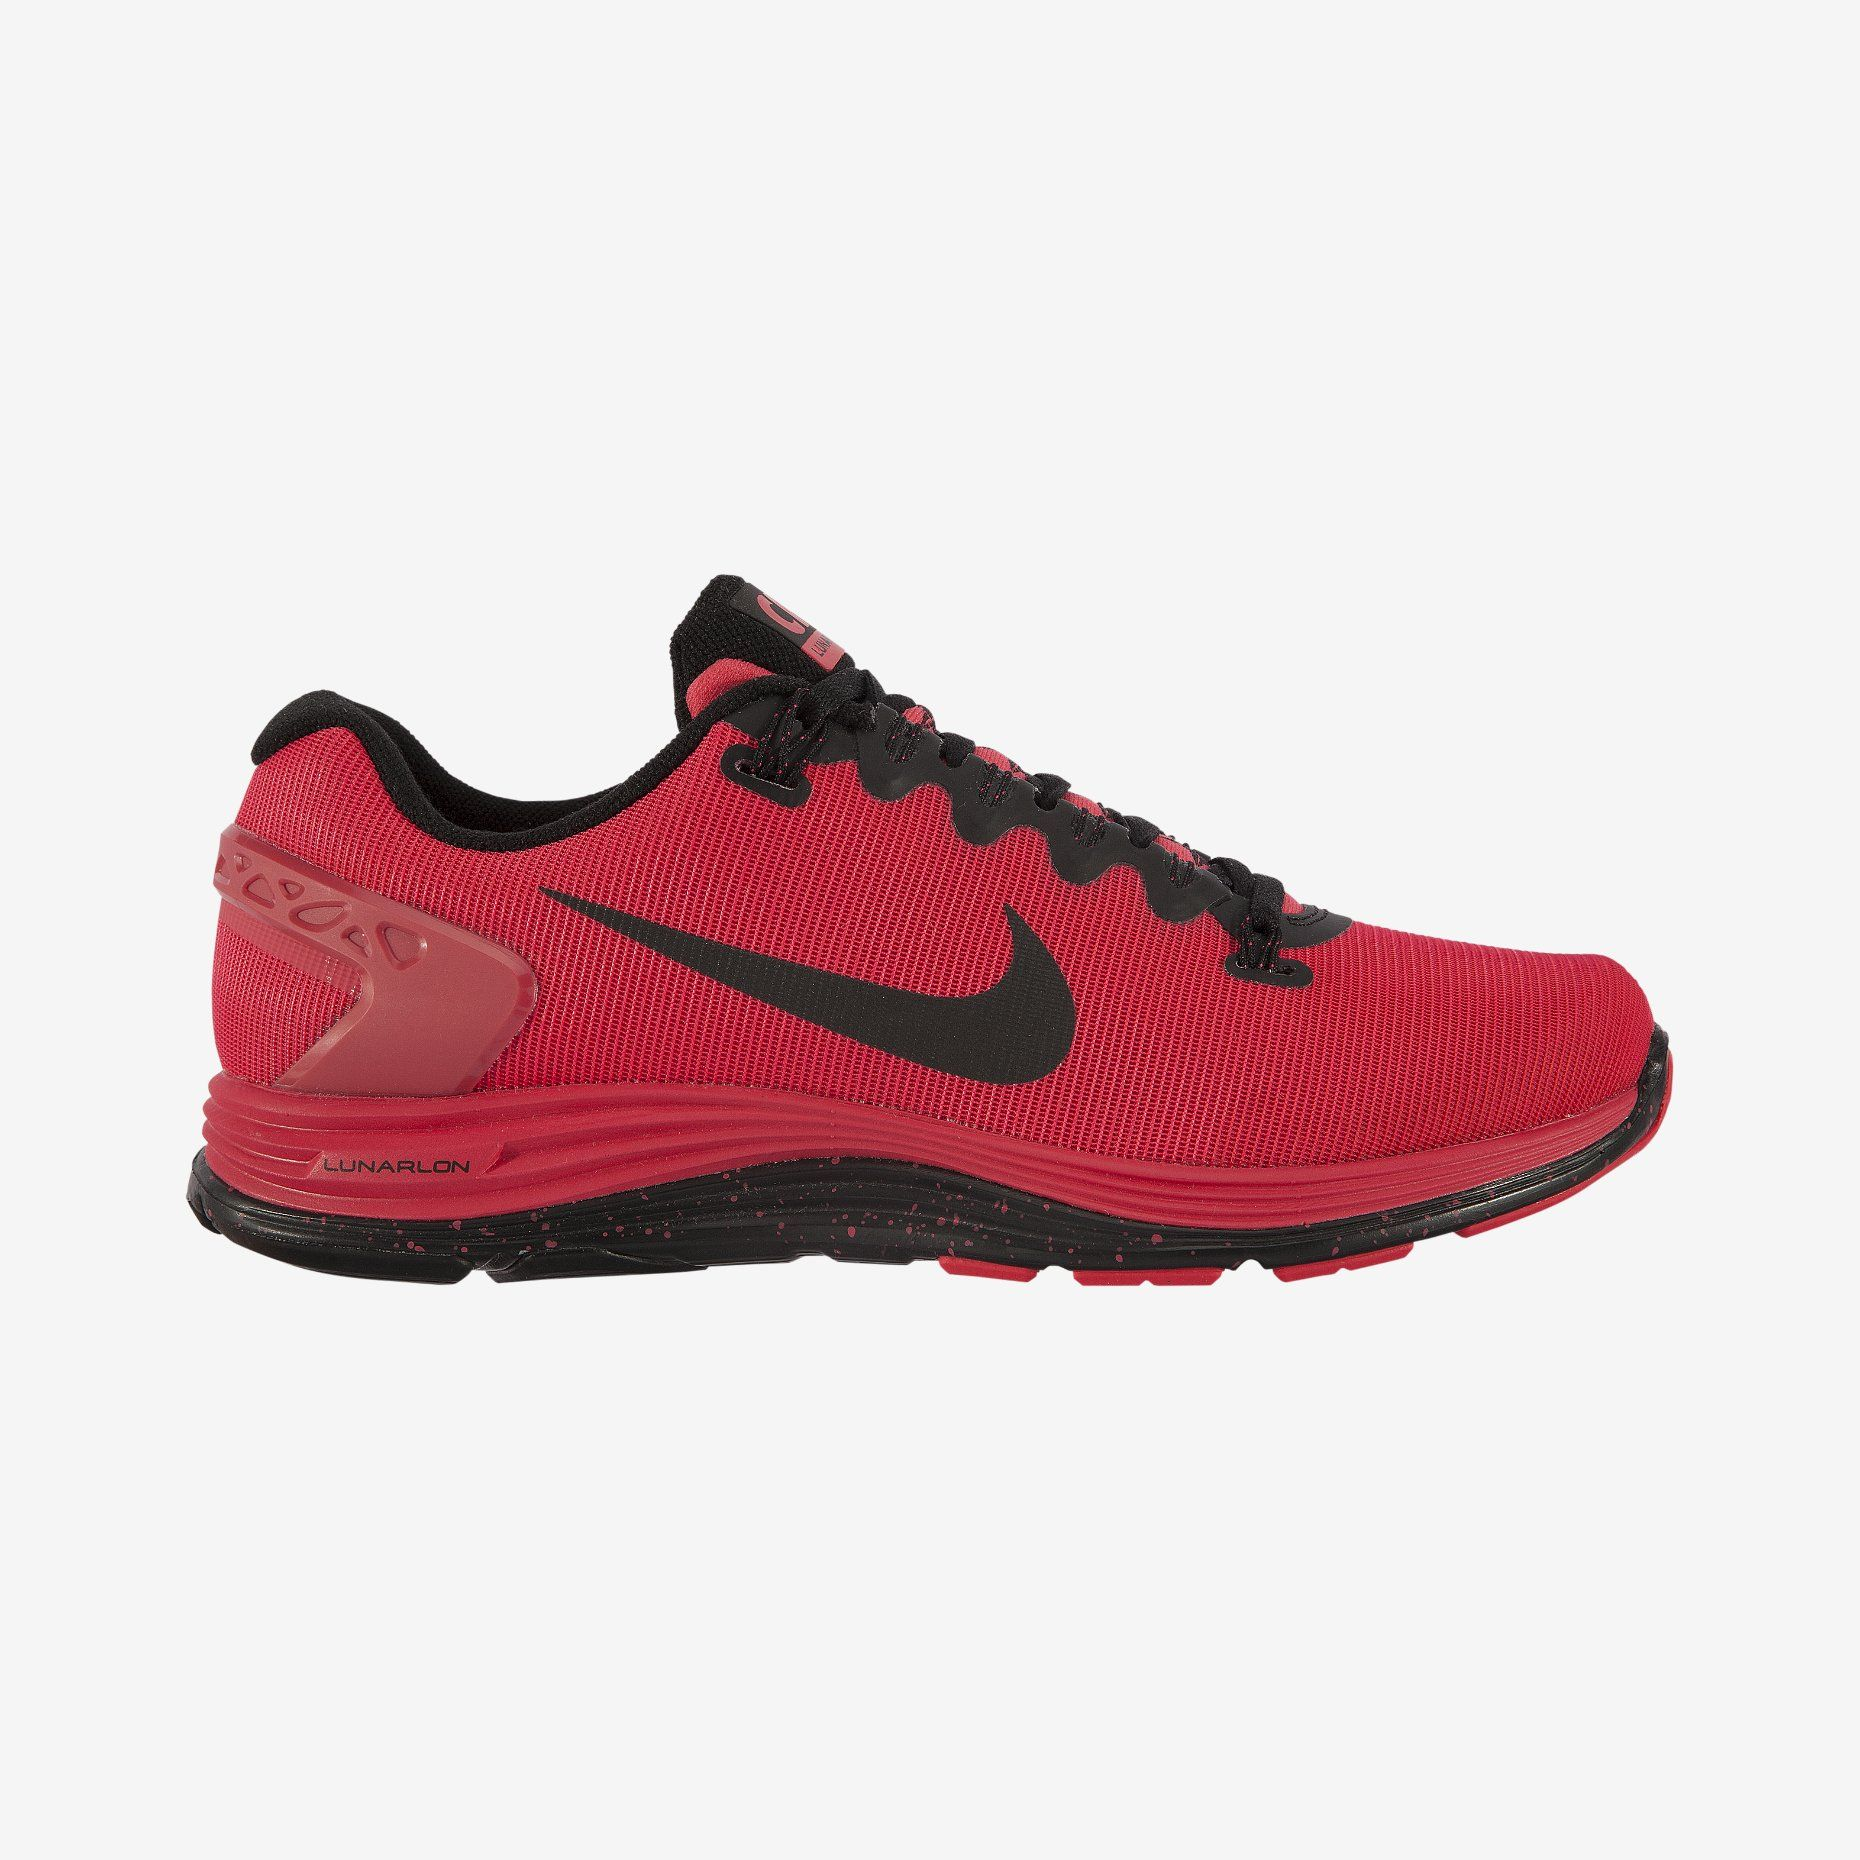 e8997d0b3e193 Nike Store. Nike LunarGlide 5 Shield (Chicago Marathon) Women s Running Shoe